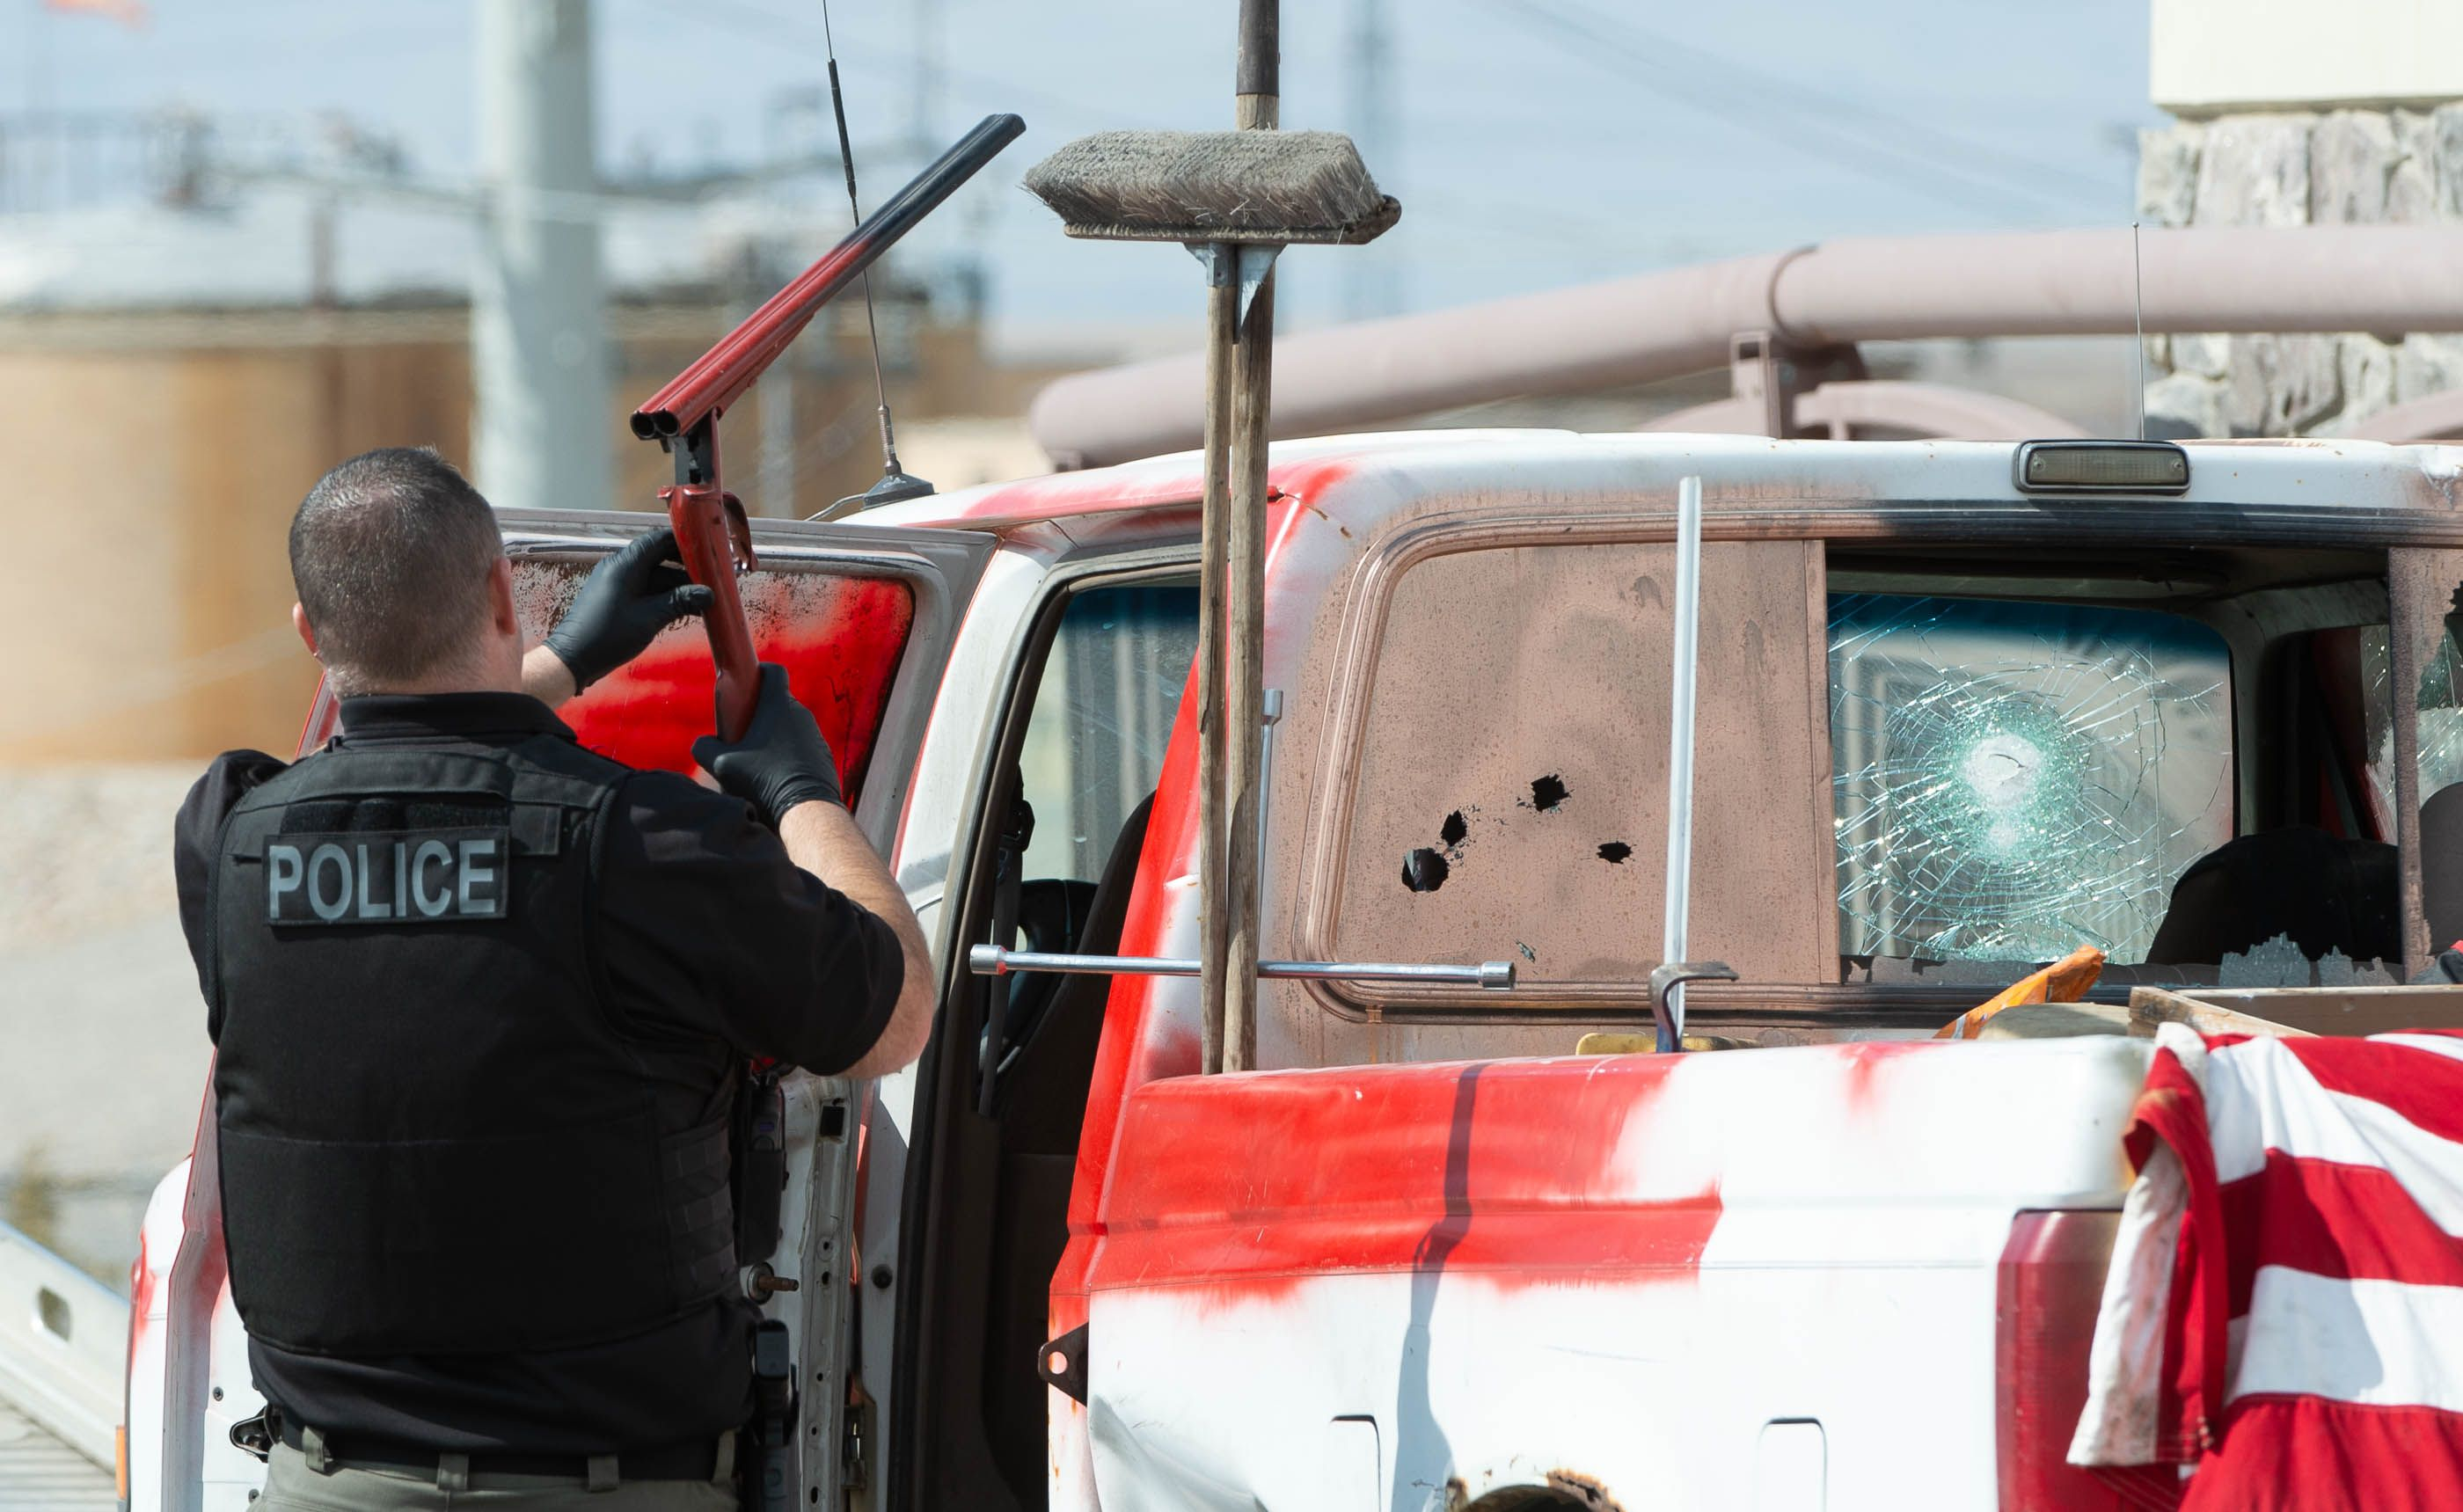 (Francisco Kjolseth  | The Salt Lake Tribune) Investigators remove a double barrel shotgun from a vehicle as numerous police agencies respond to a man driving erratically and claiming to have a gun and a bomb with an initial police chase ending on Center Street over Legacy Highway on Wednesday, March 17, 2021. The suspect was taken into custody.